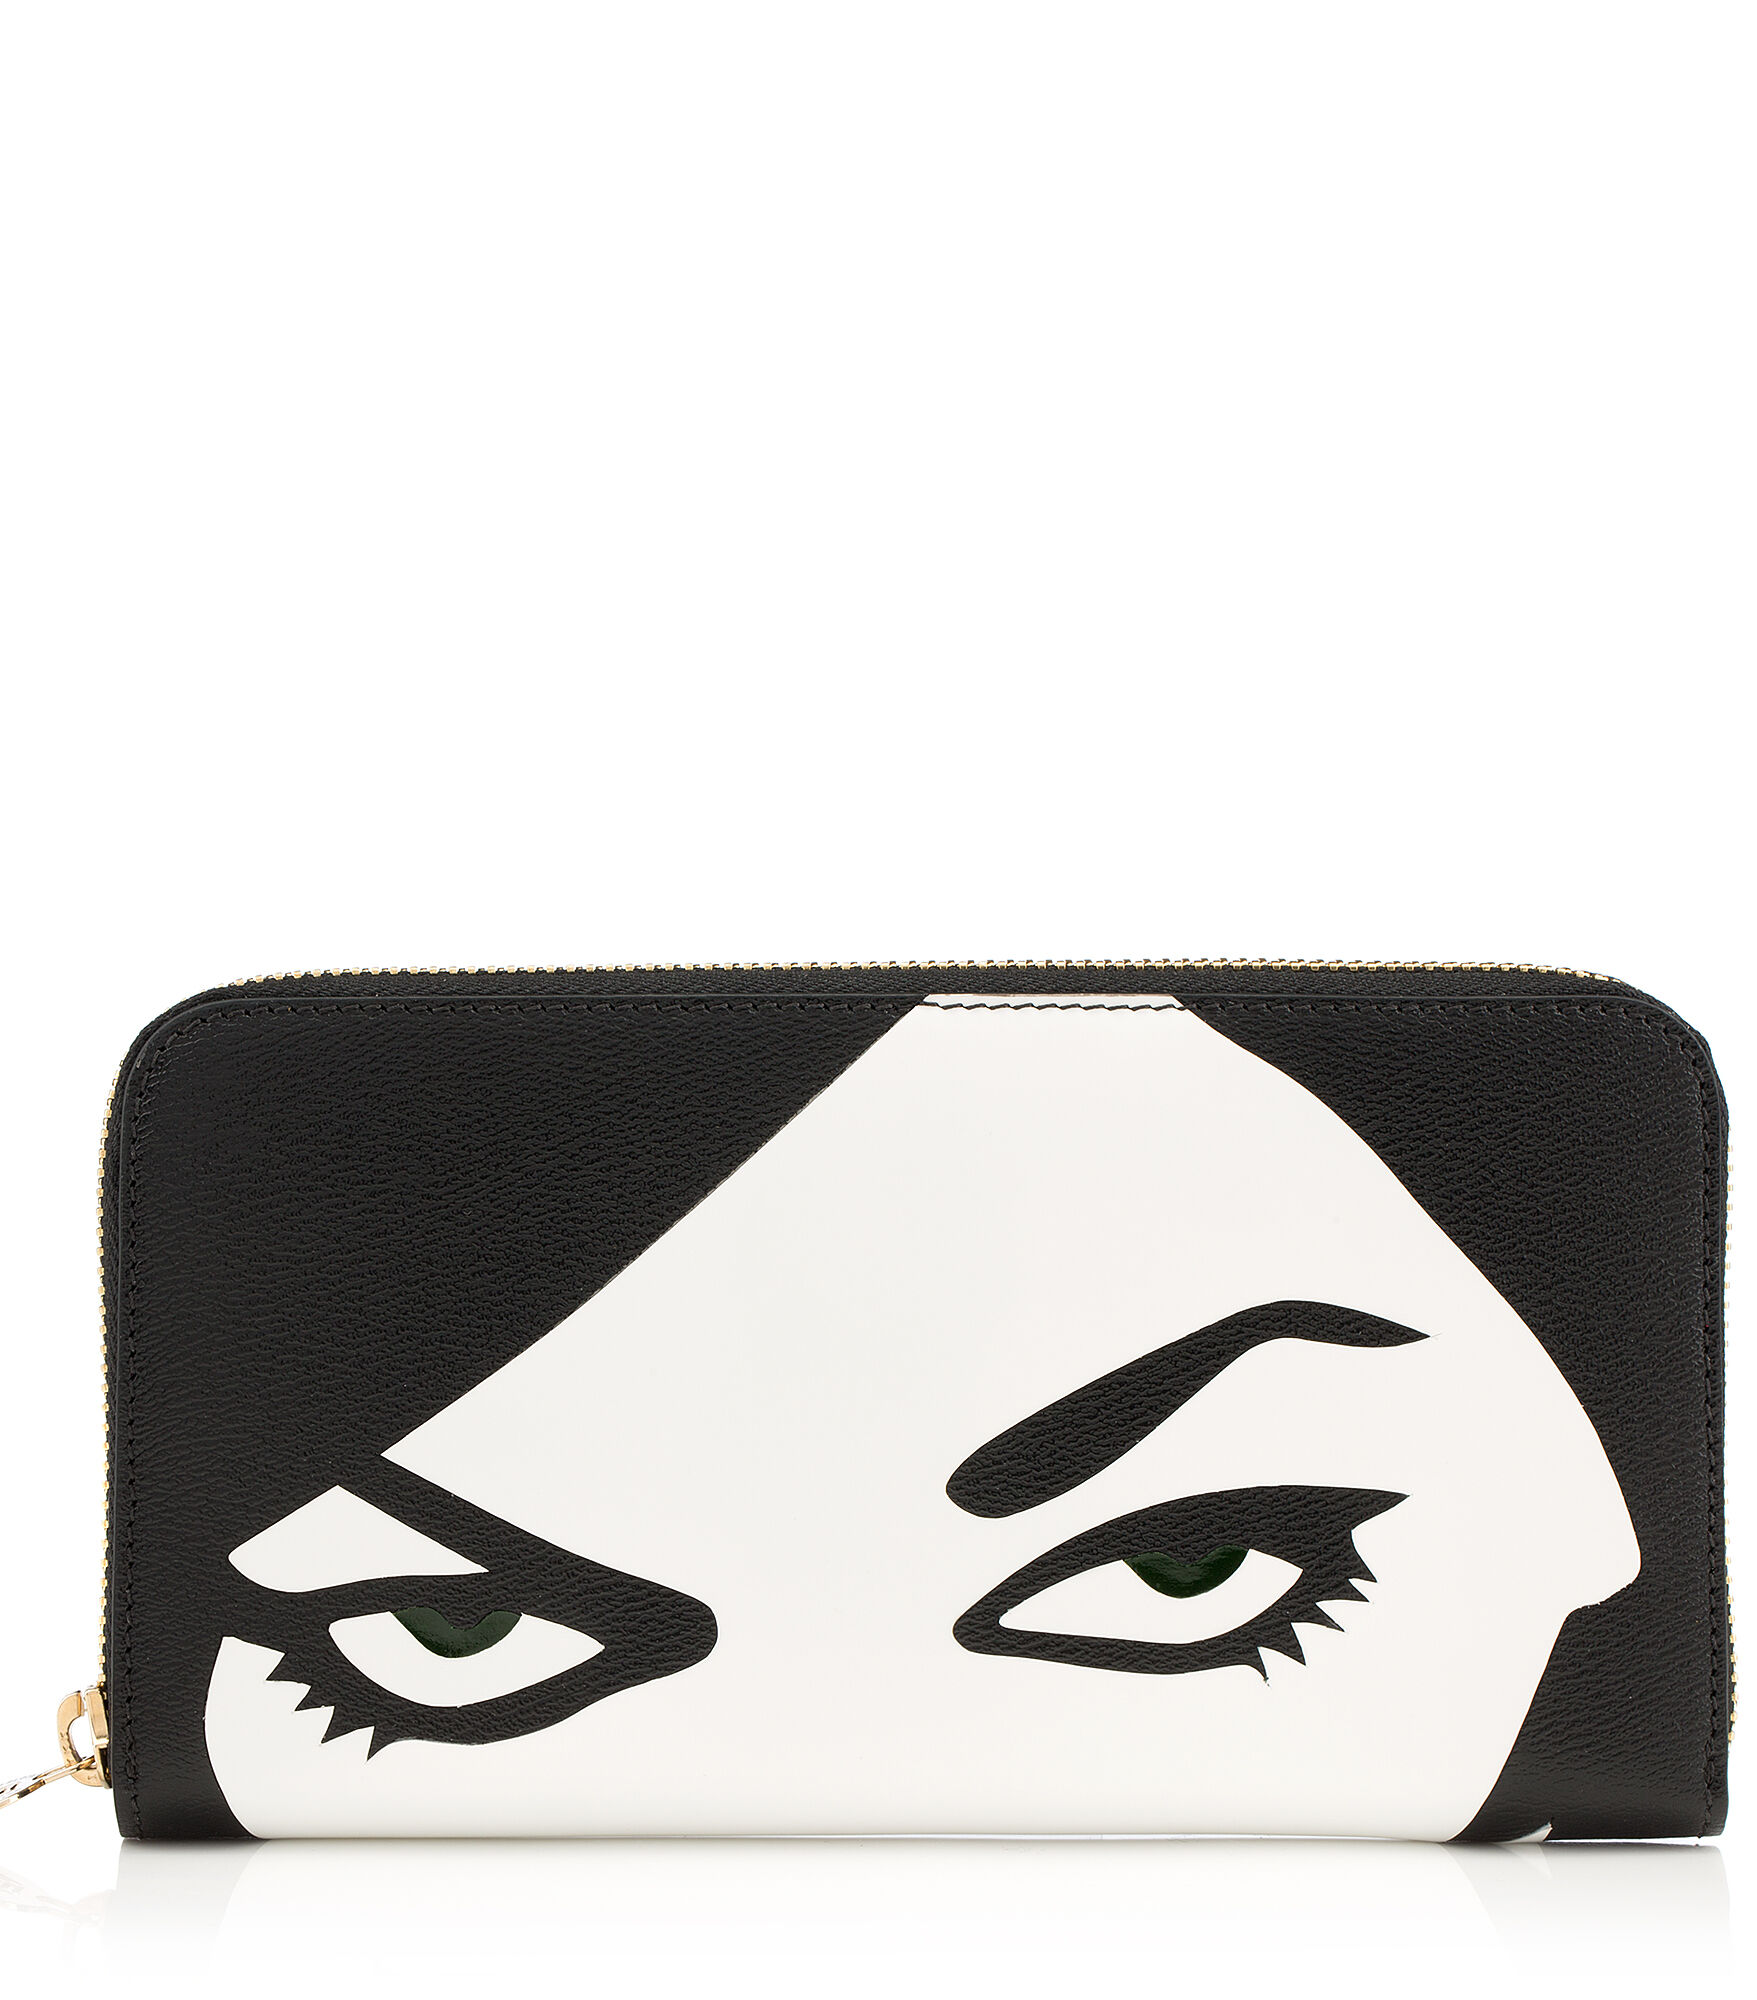 Charlotte Olympia Small Leather Goods Women - ZIP WALLET BLACK Grained Calfskin OS